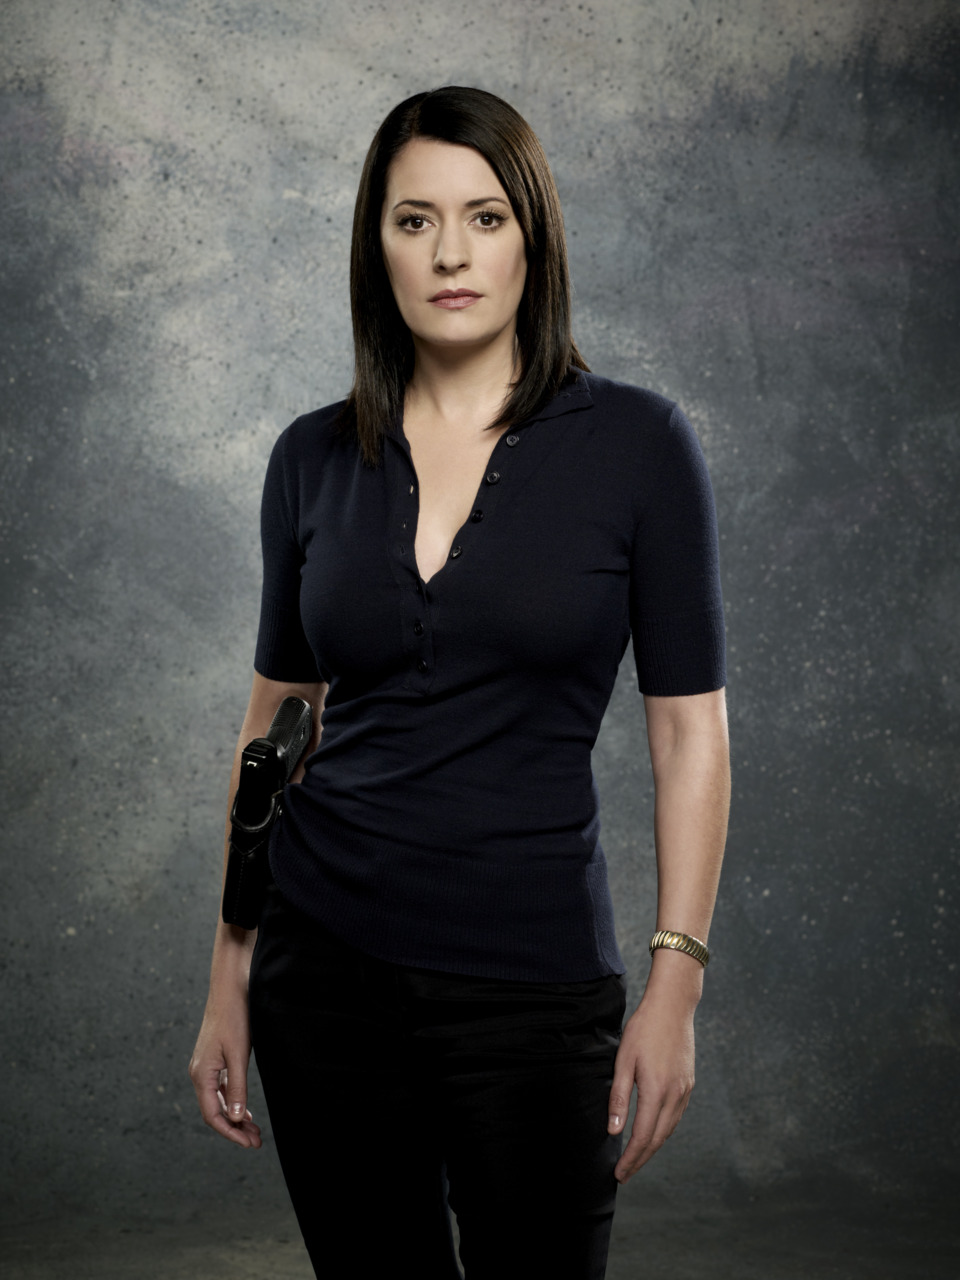 Image result for criminal minds prentiss